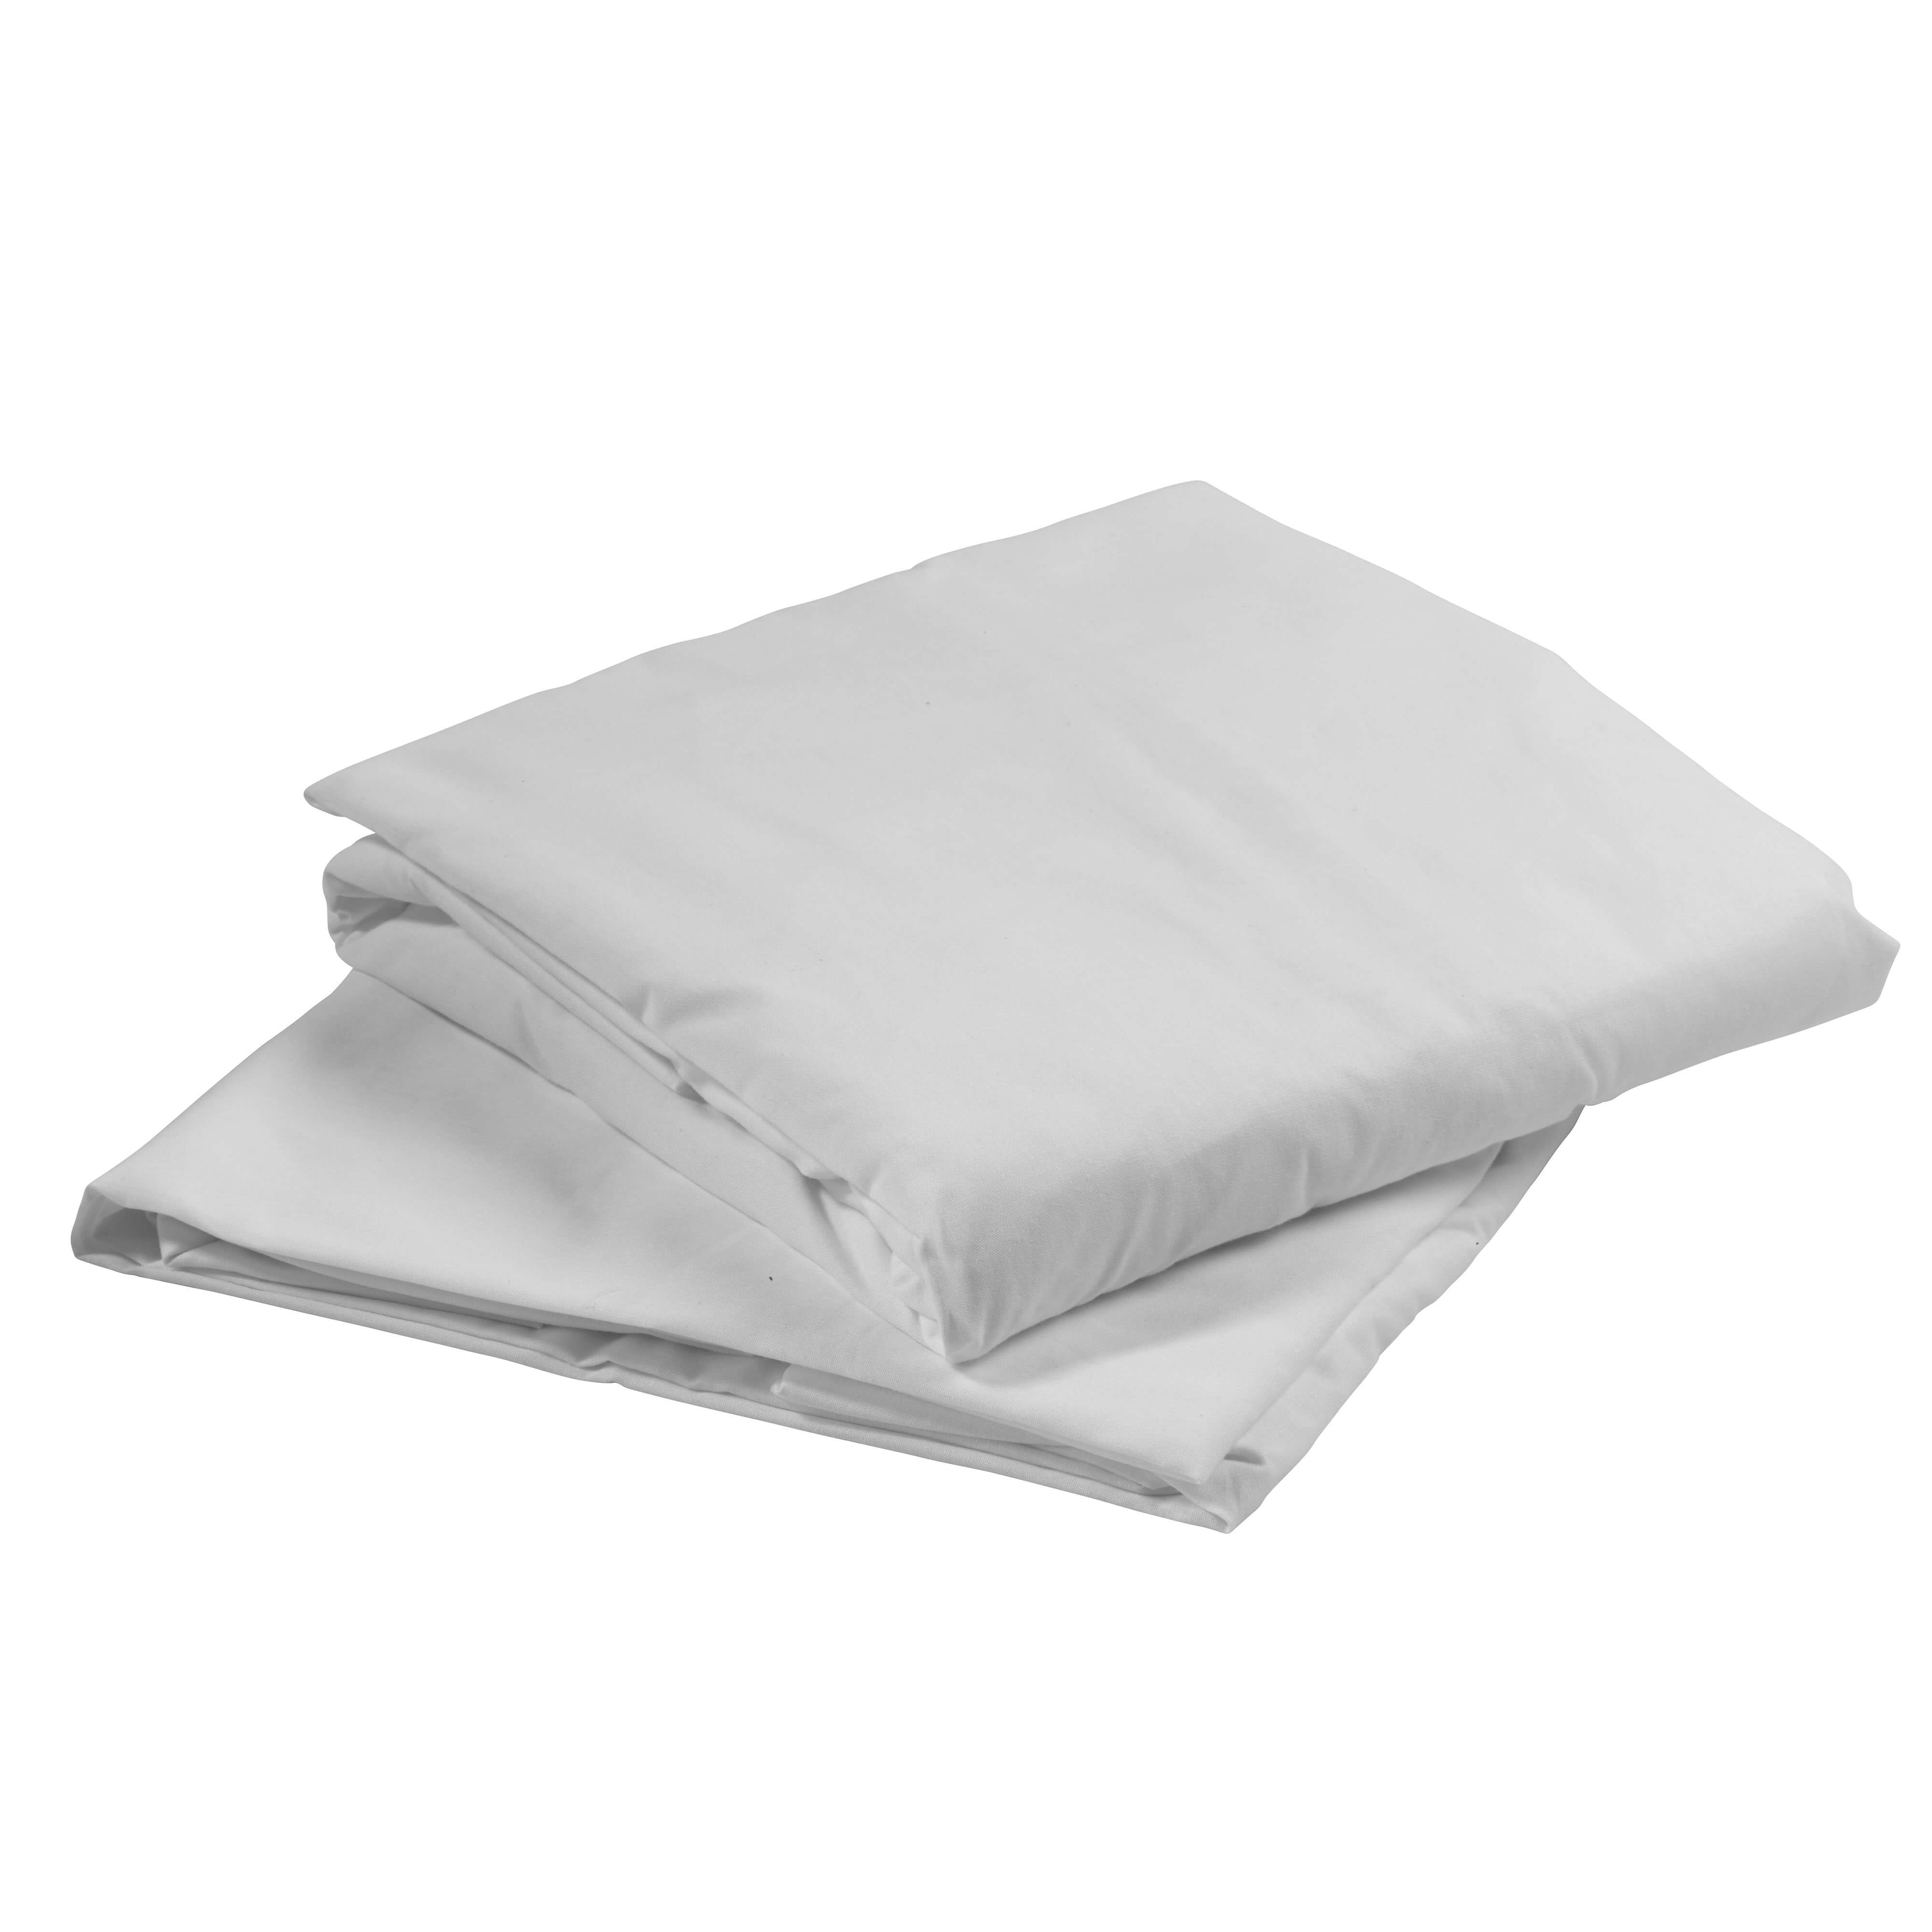 "Bariatric Bedding in a Box, 42"" x 80"" x 8"""